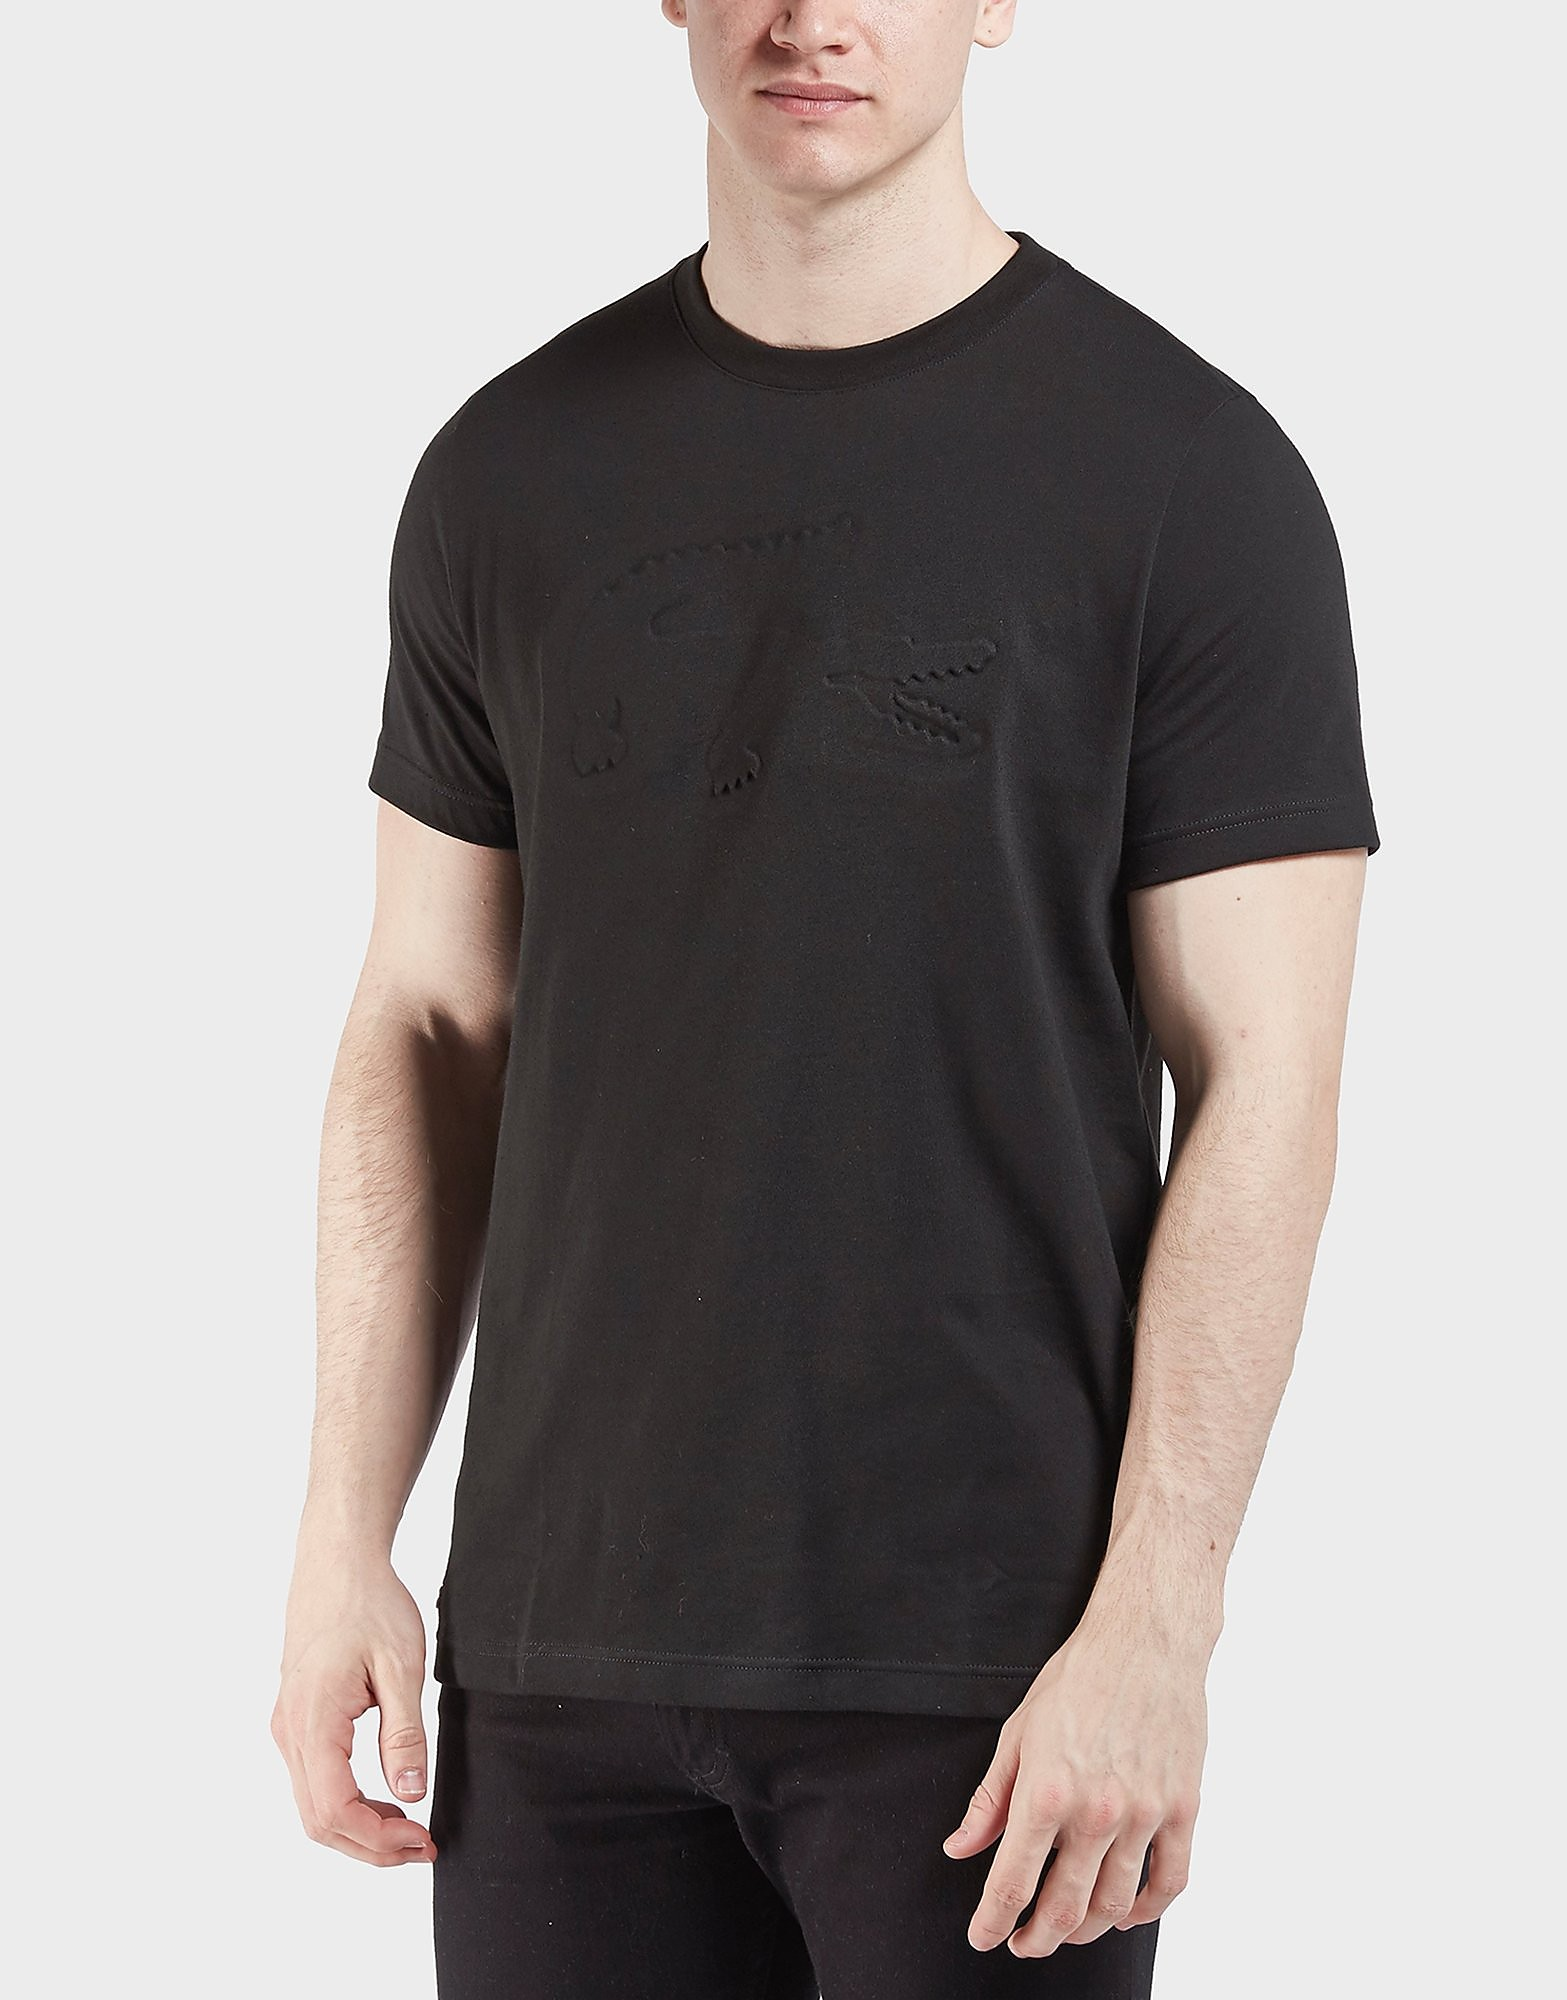 Lacoste Embossed Croc Short Sleeve T-Shirt